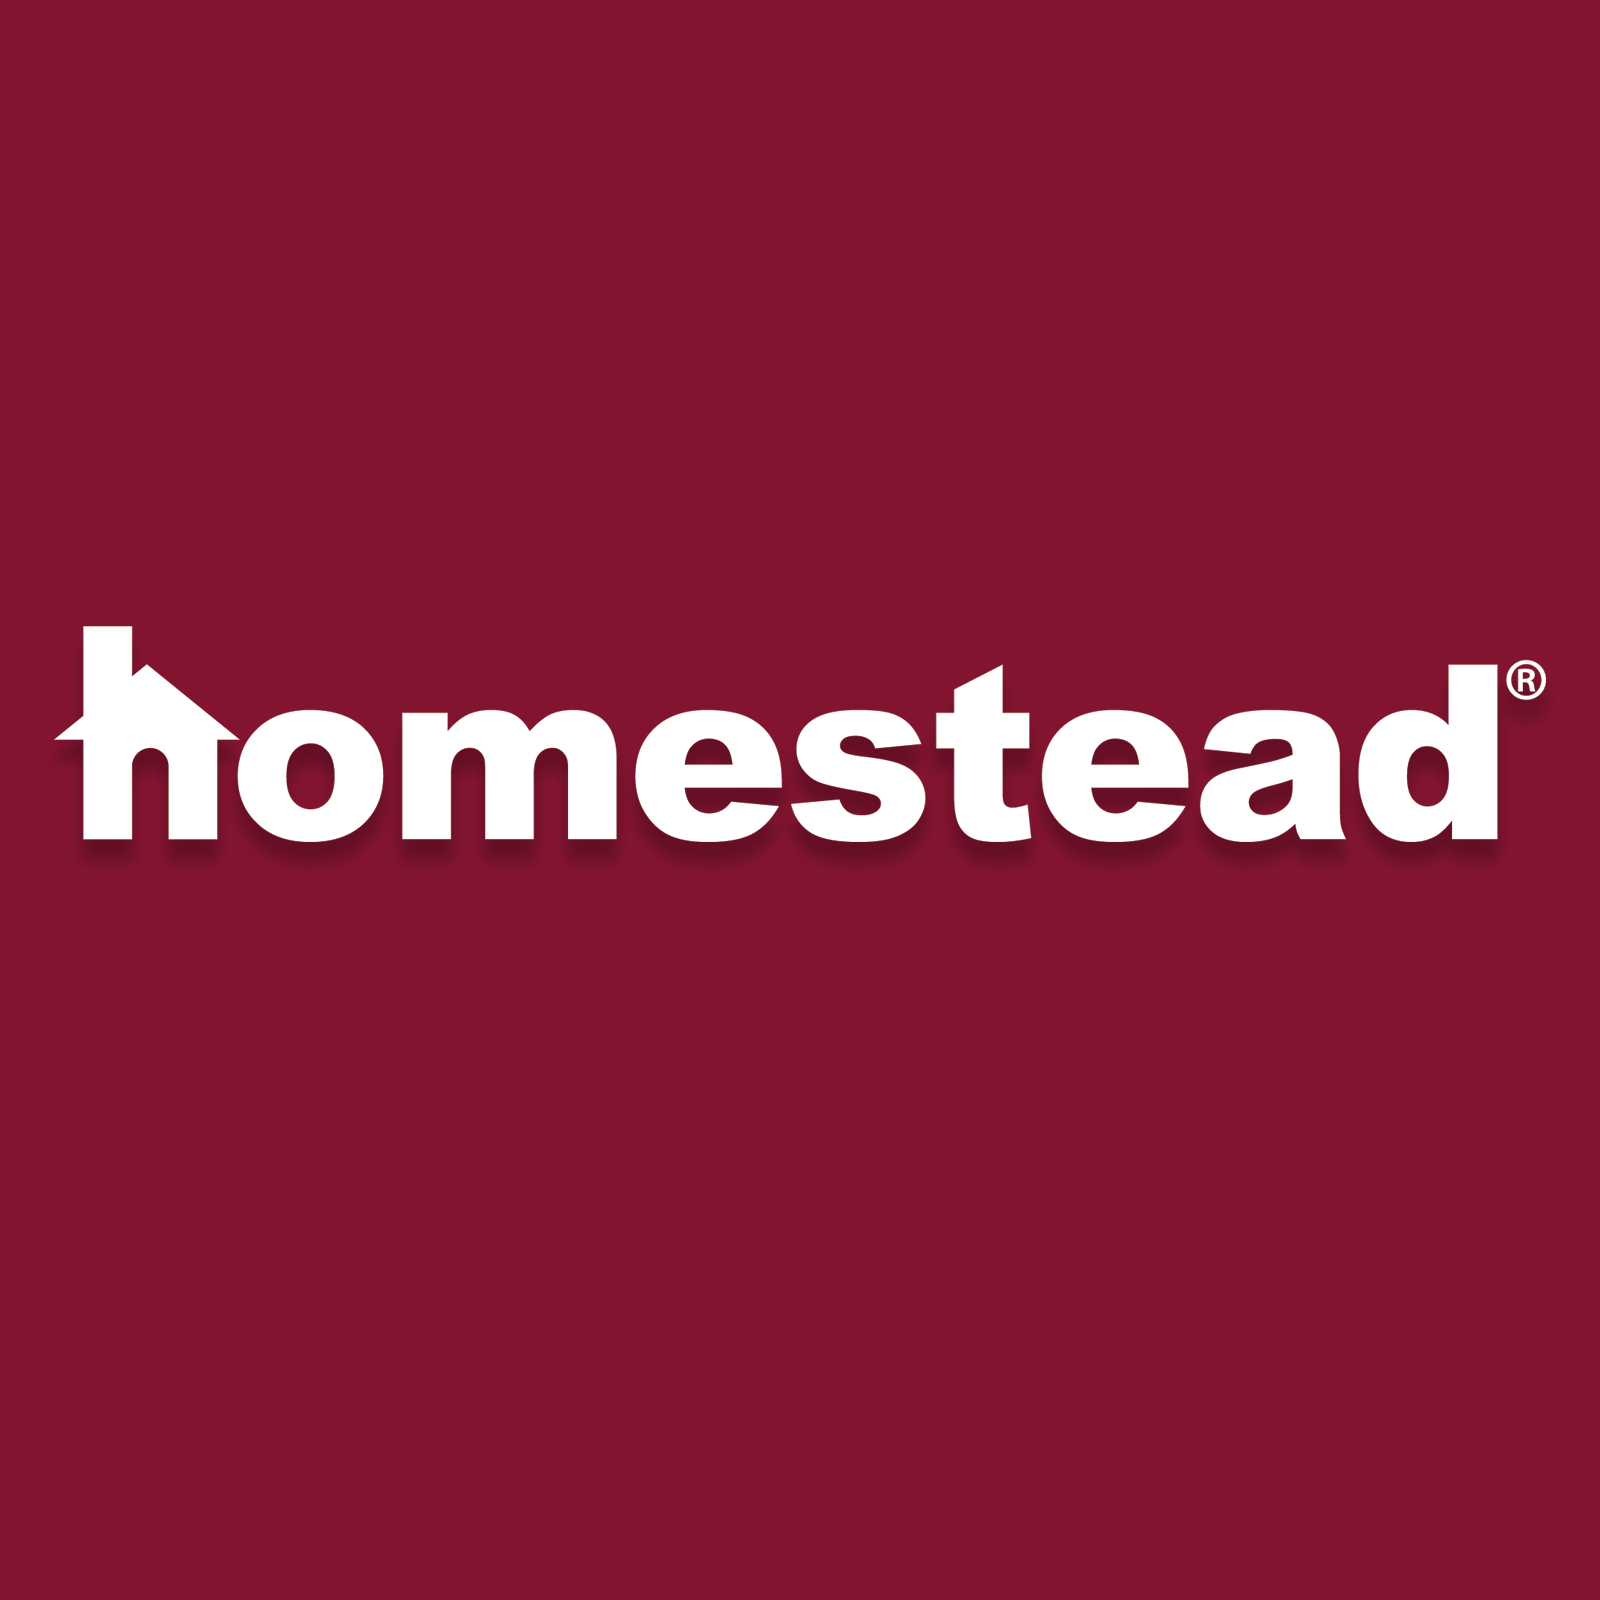 The Homesteader